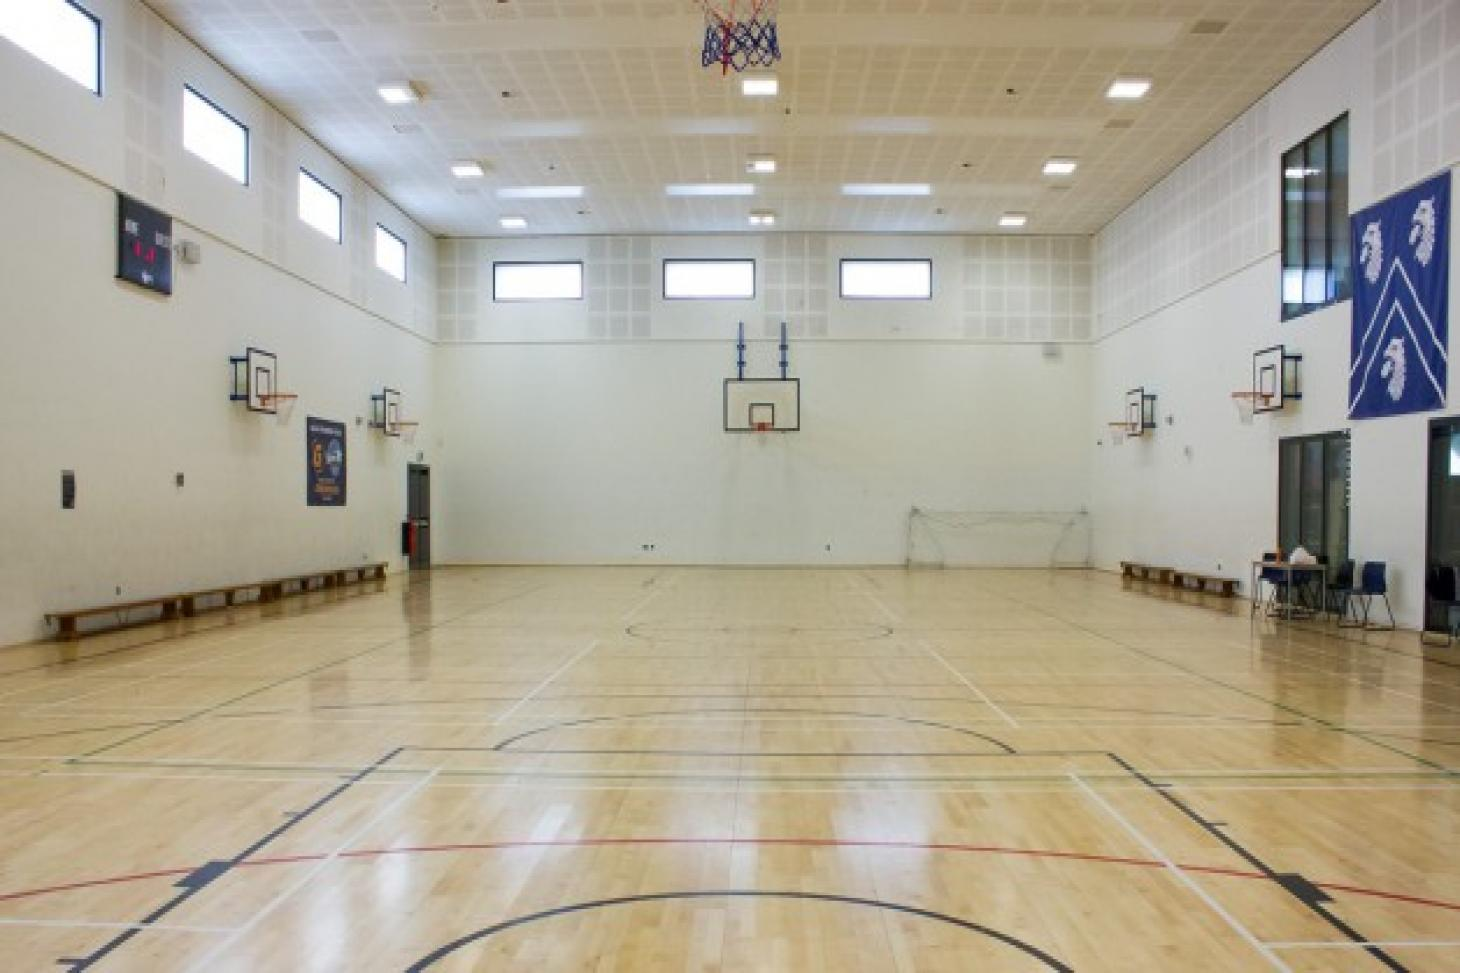 Raines Foundation School Indoor netball court